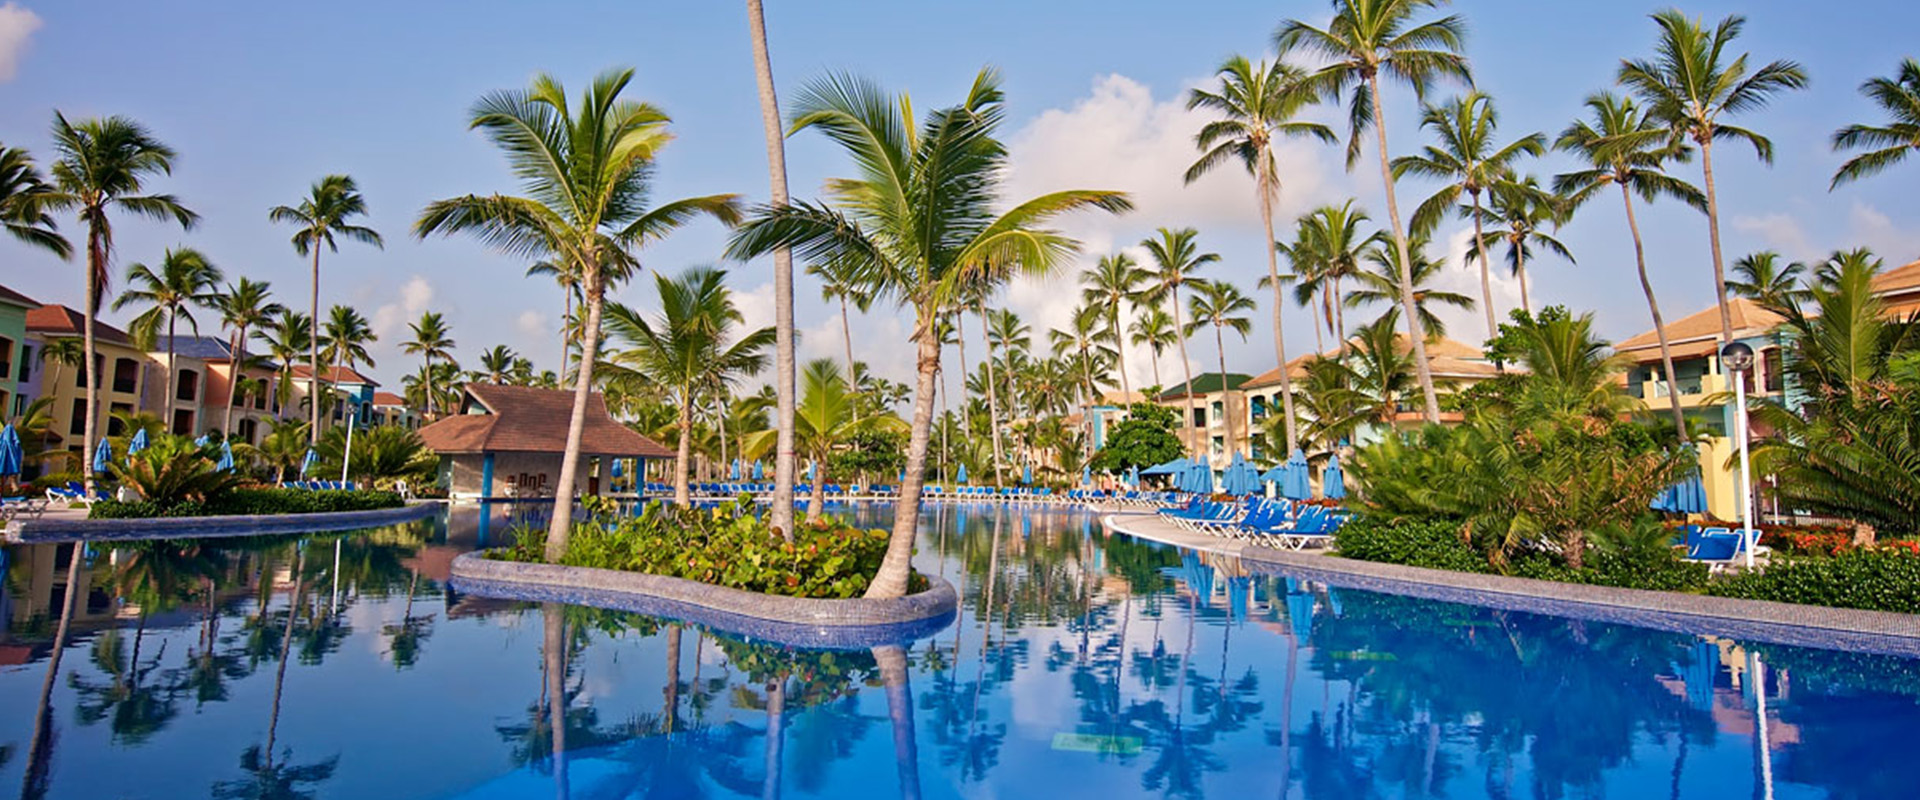 Travel By Bob Discount All Inclusive Vacation Packages